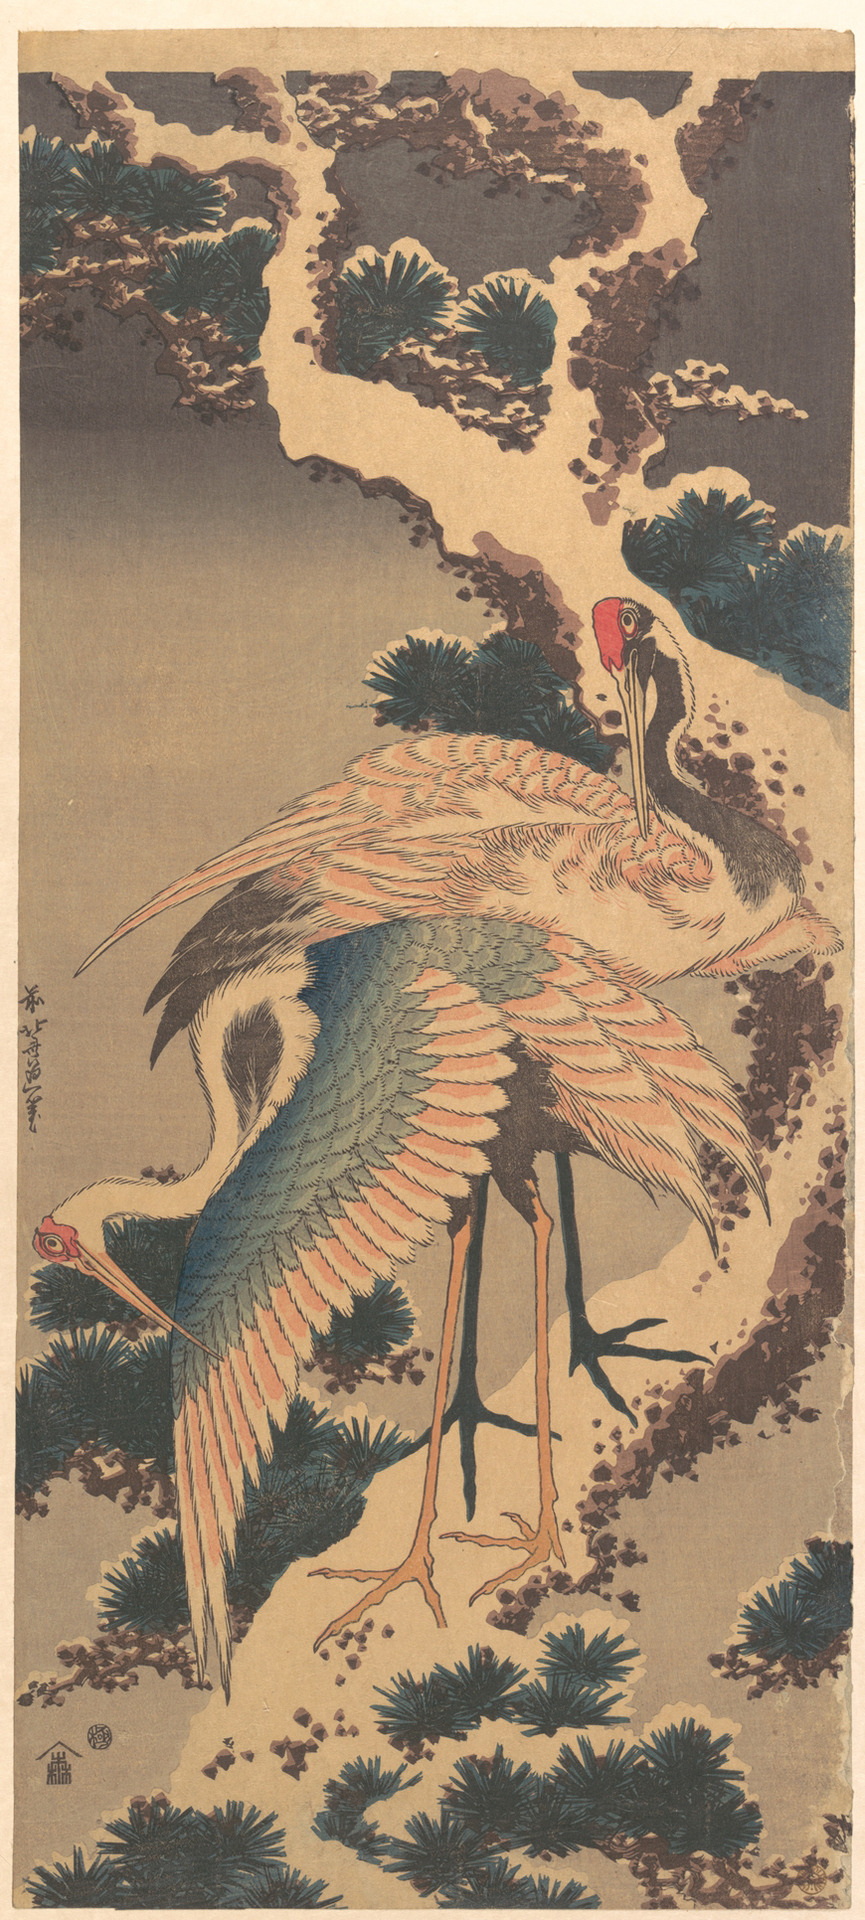 Katsushika Hokusai - Cranes on Branch of Snow-covered Pine, 1820s. Polychrome woodblock print; ink and color on paper